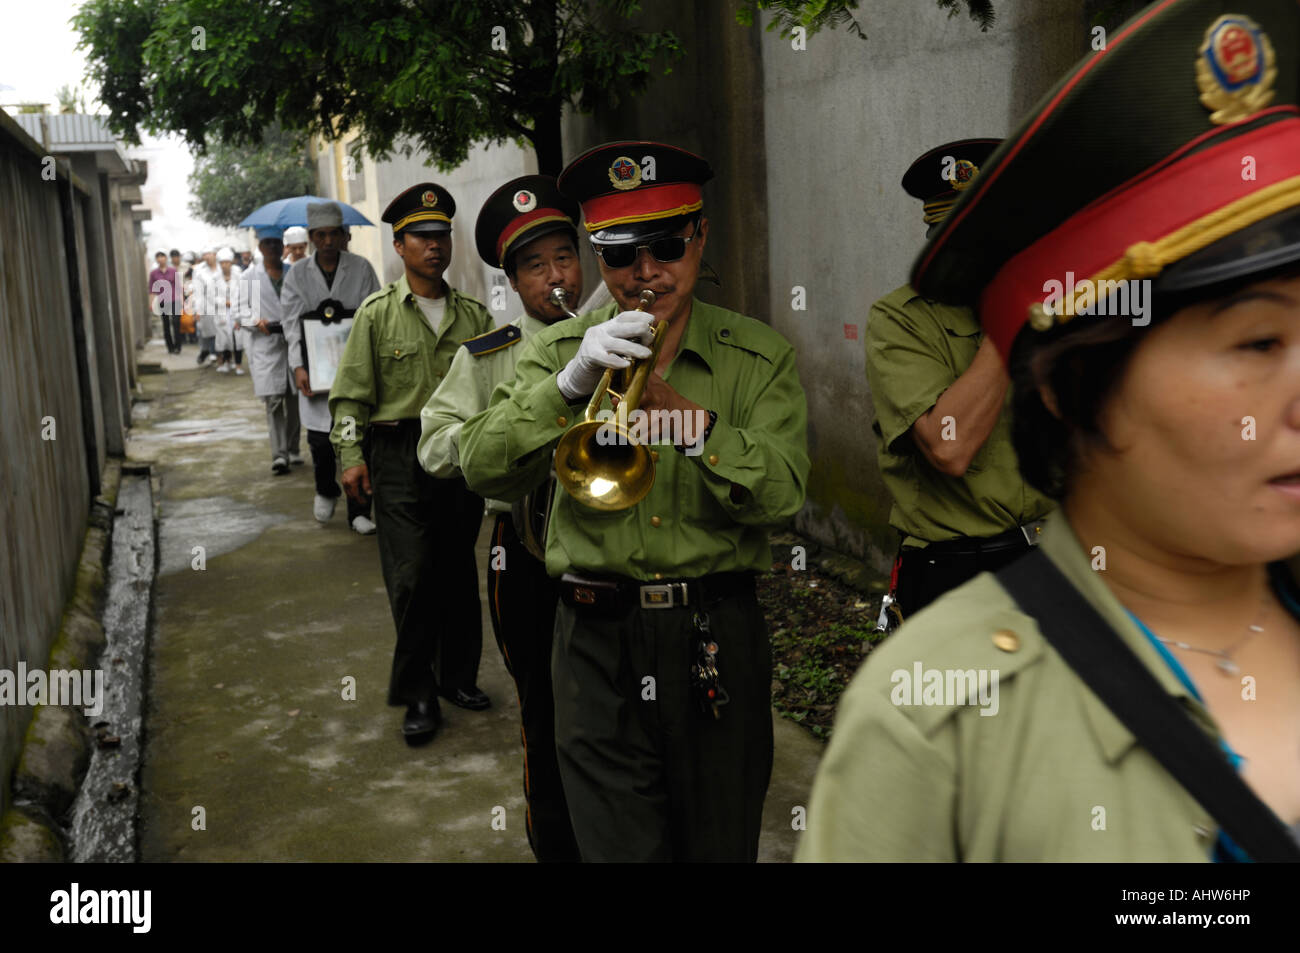 Members of a brass band dressed in police uniforms during a funeral ceremony in Ningbo Zhejiang China June 2006 - Stock Image